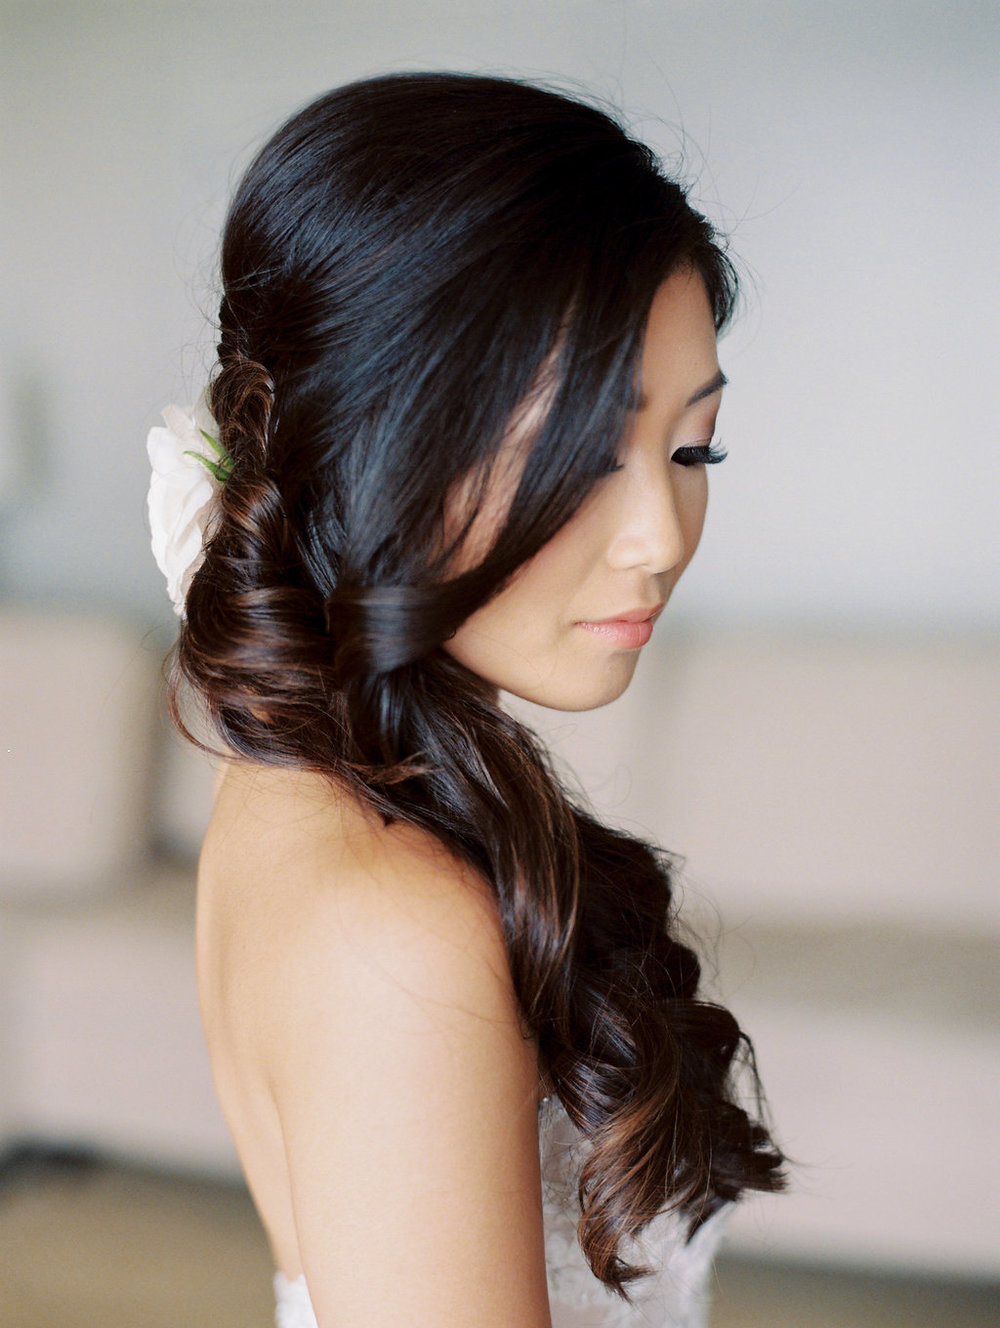 hawaii-bride-bridal-hair.jpg